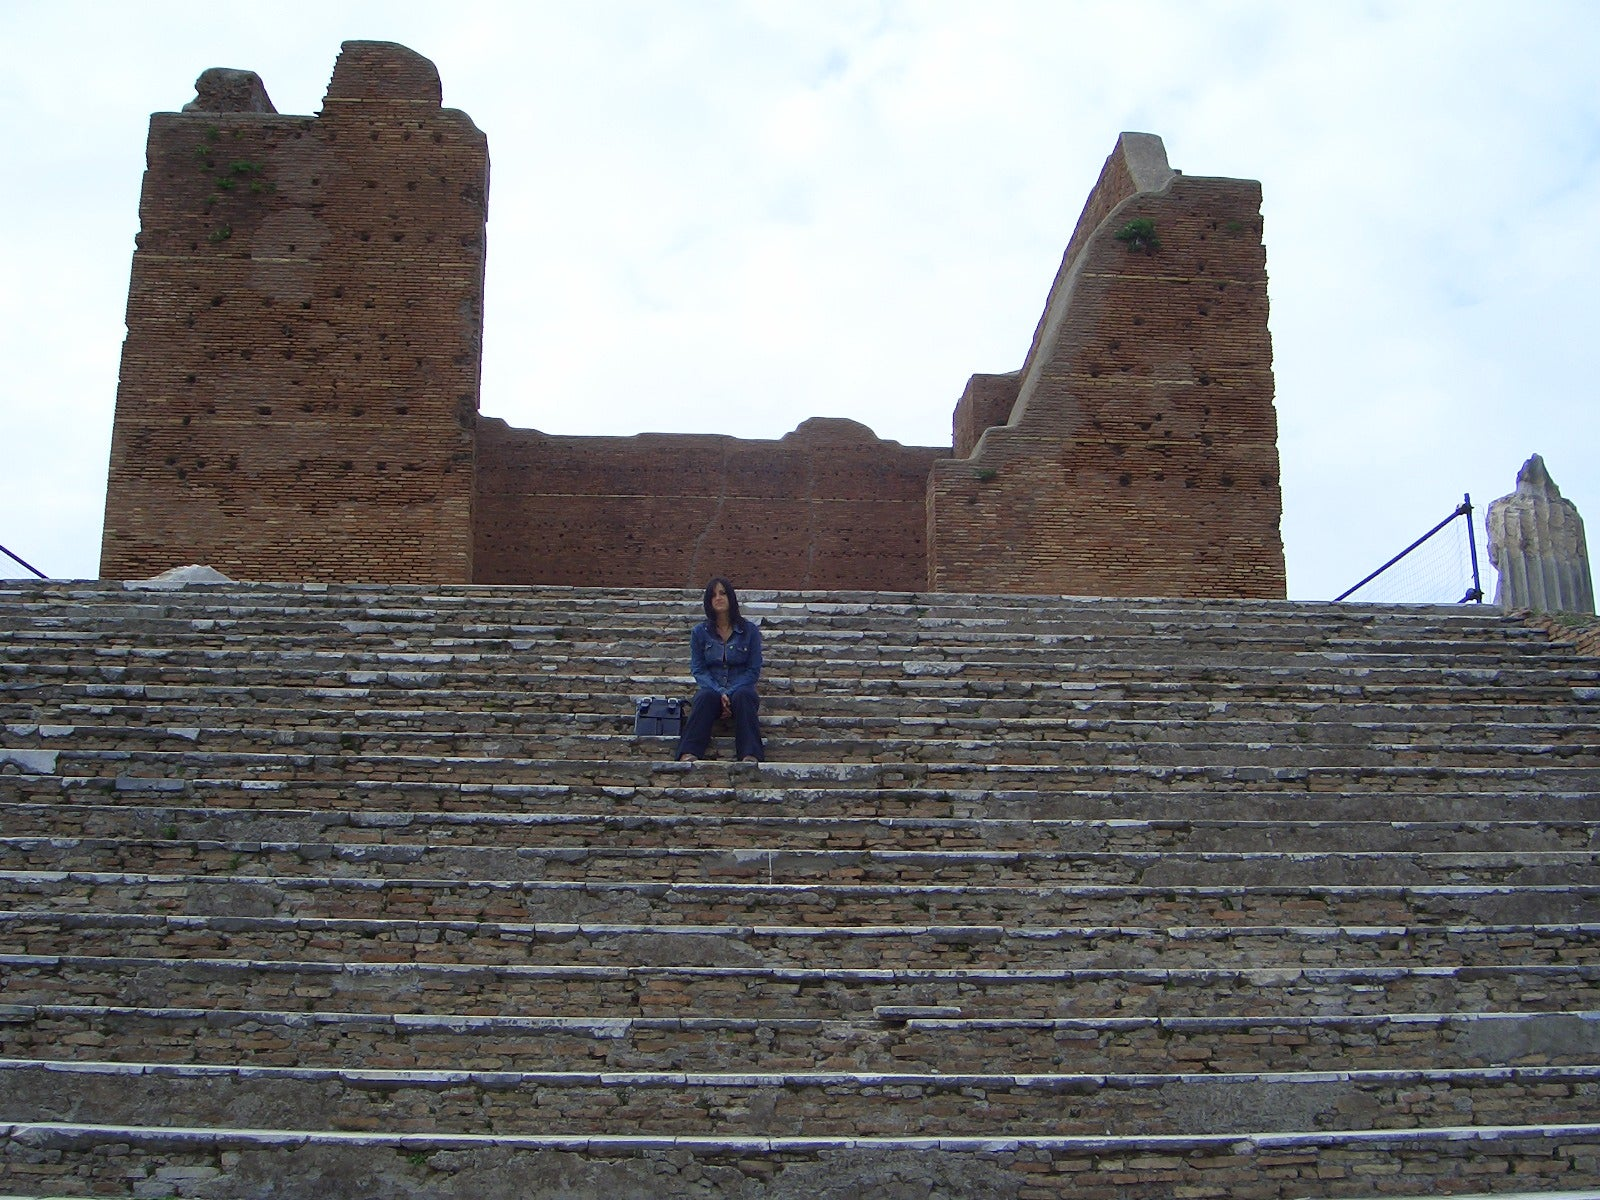 Pared en Ostia Antica